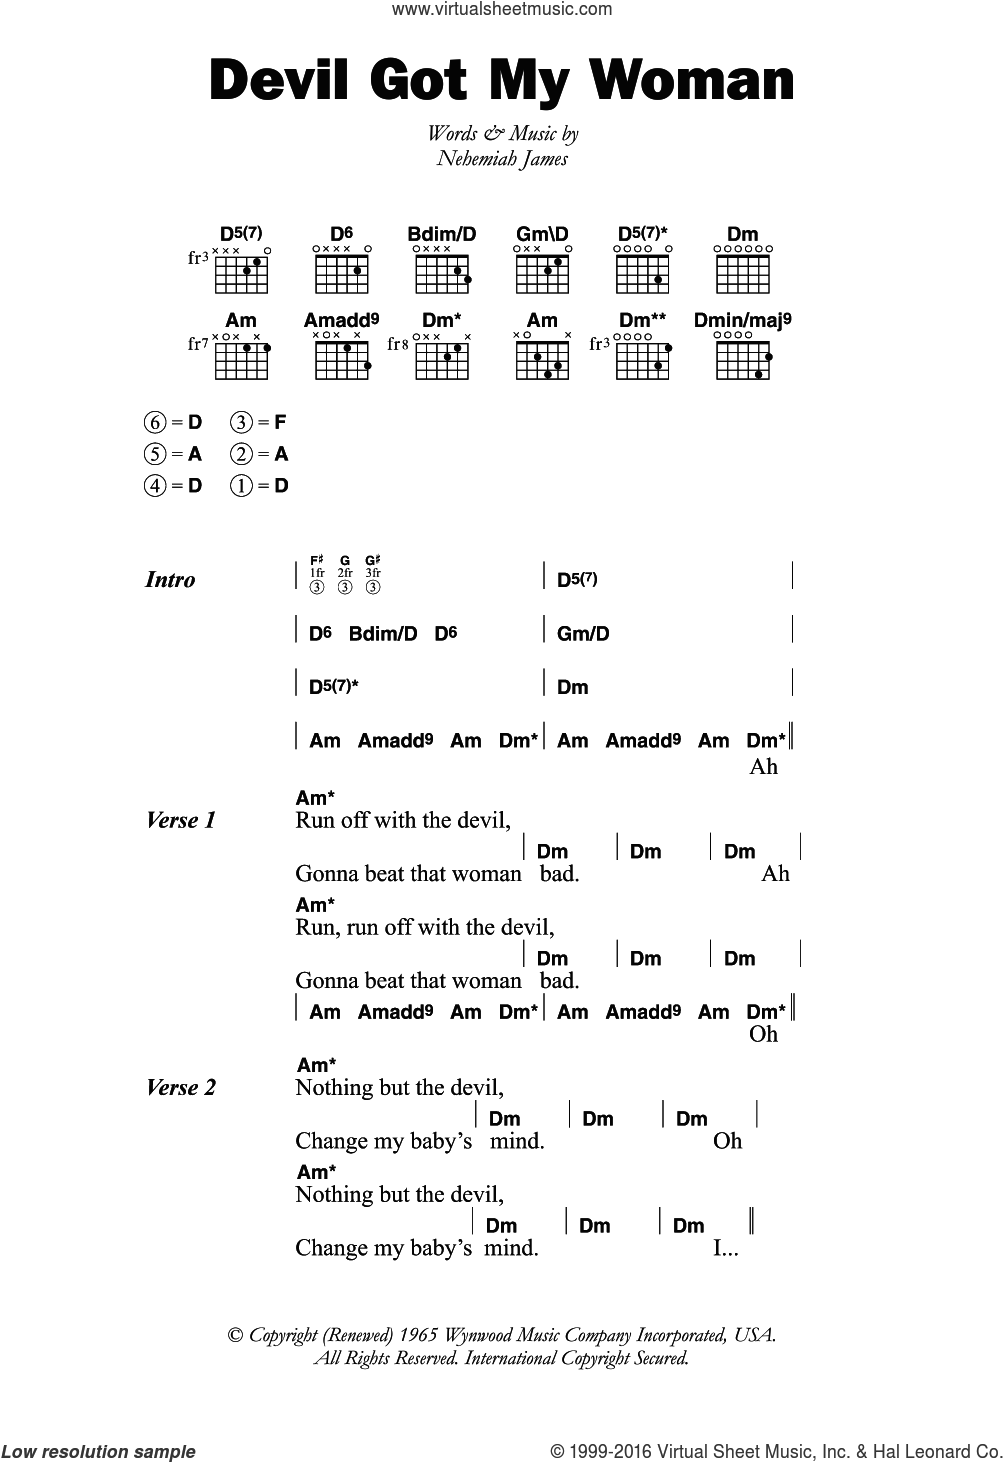 Devil Got My Woman sheet music for guitar (chords) by Nehemiah James. Score Image Preview.